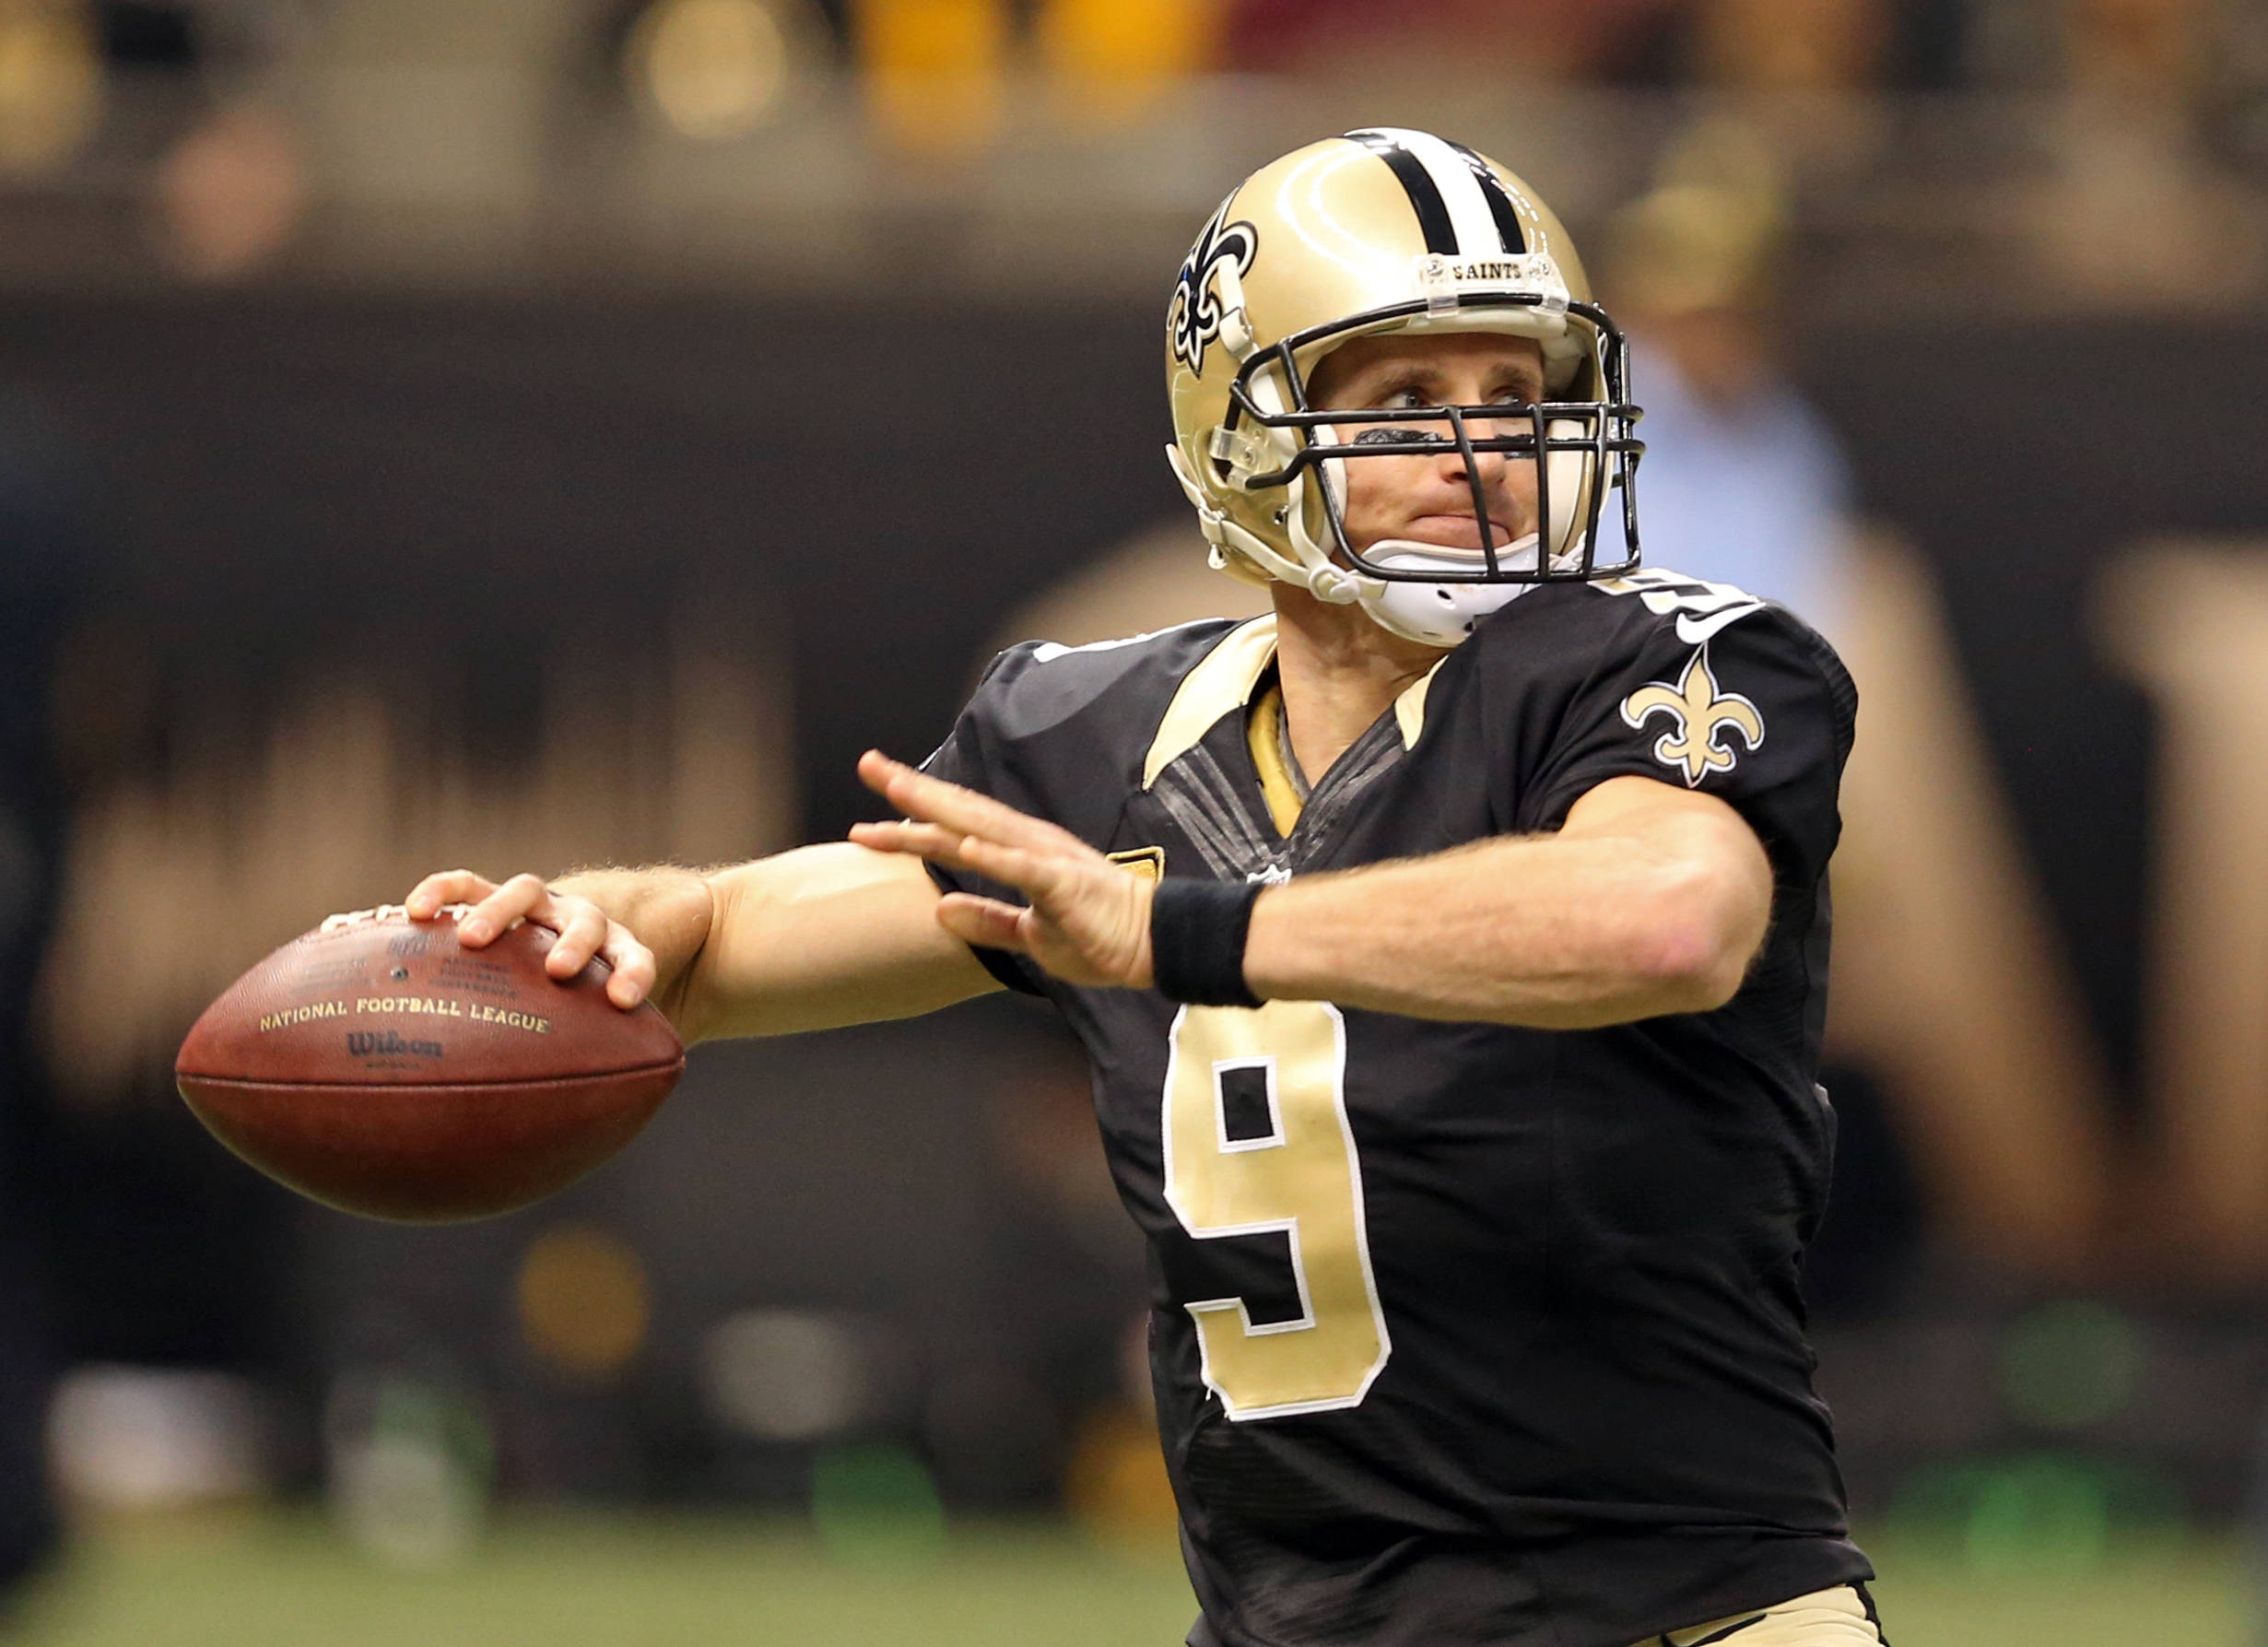 Reactions to the Drew Brees Contract Extension